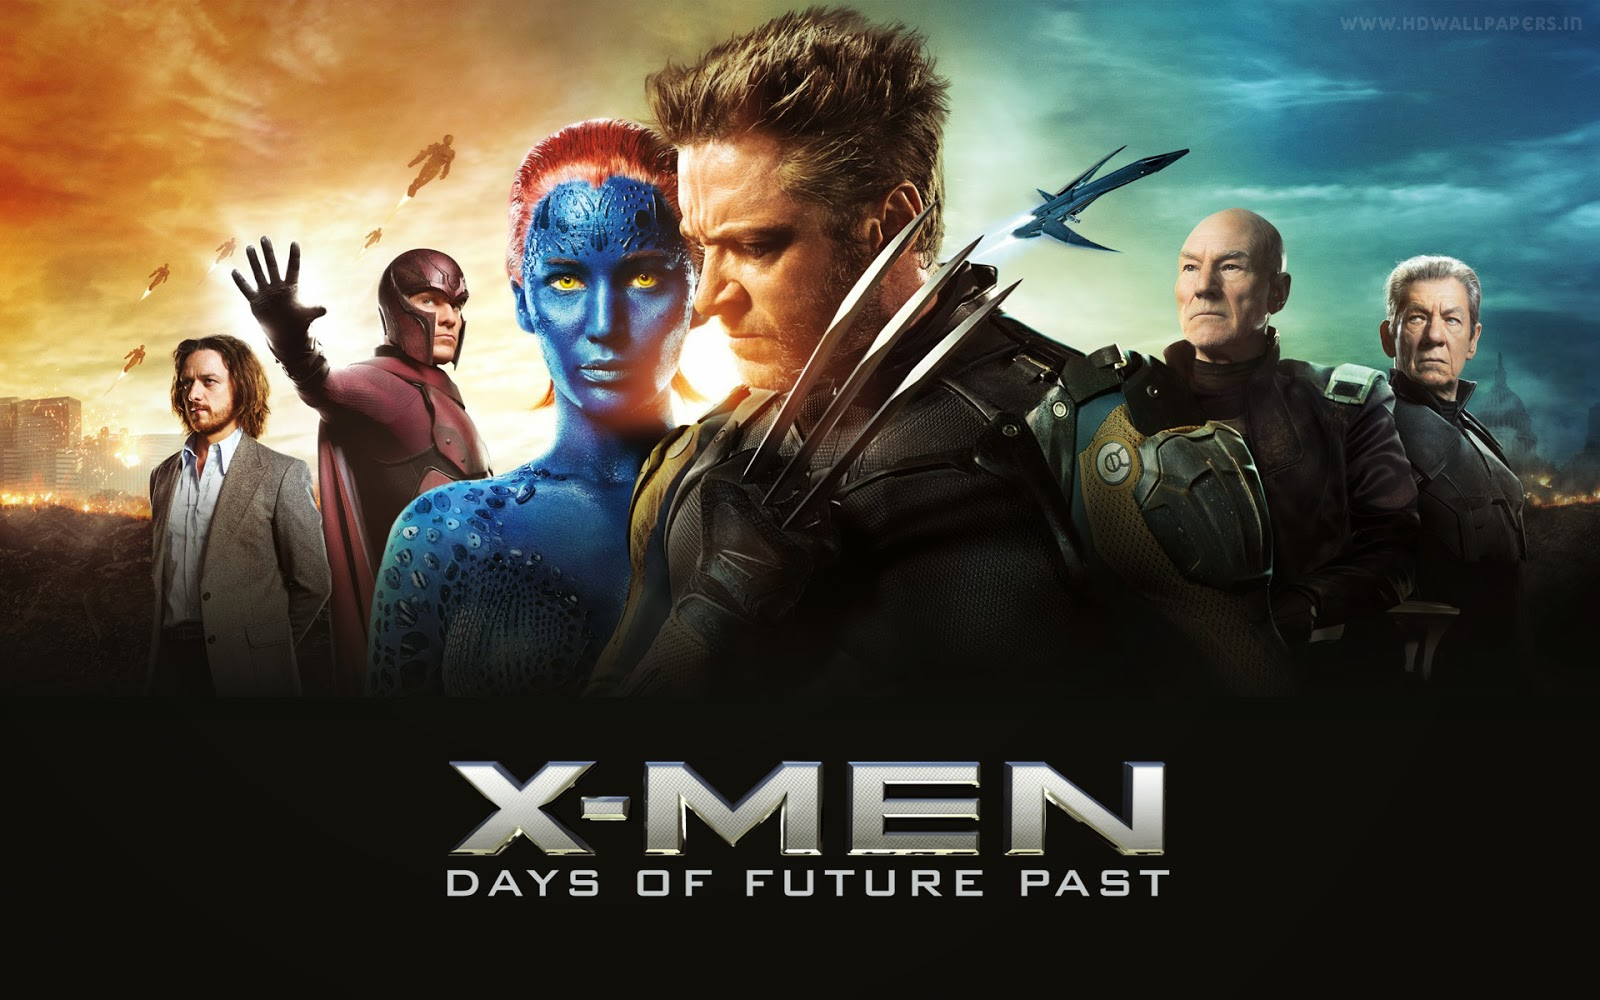 film, ryemovies, ganool, x-men, days of, future, past, movies, 2014, download, free, gratis, subtitle, terjemah, indonesia